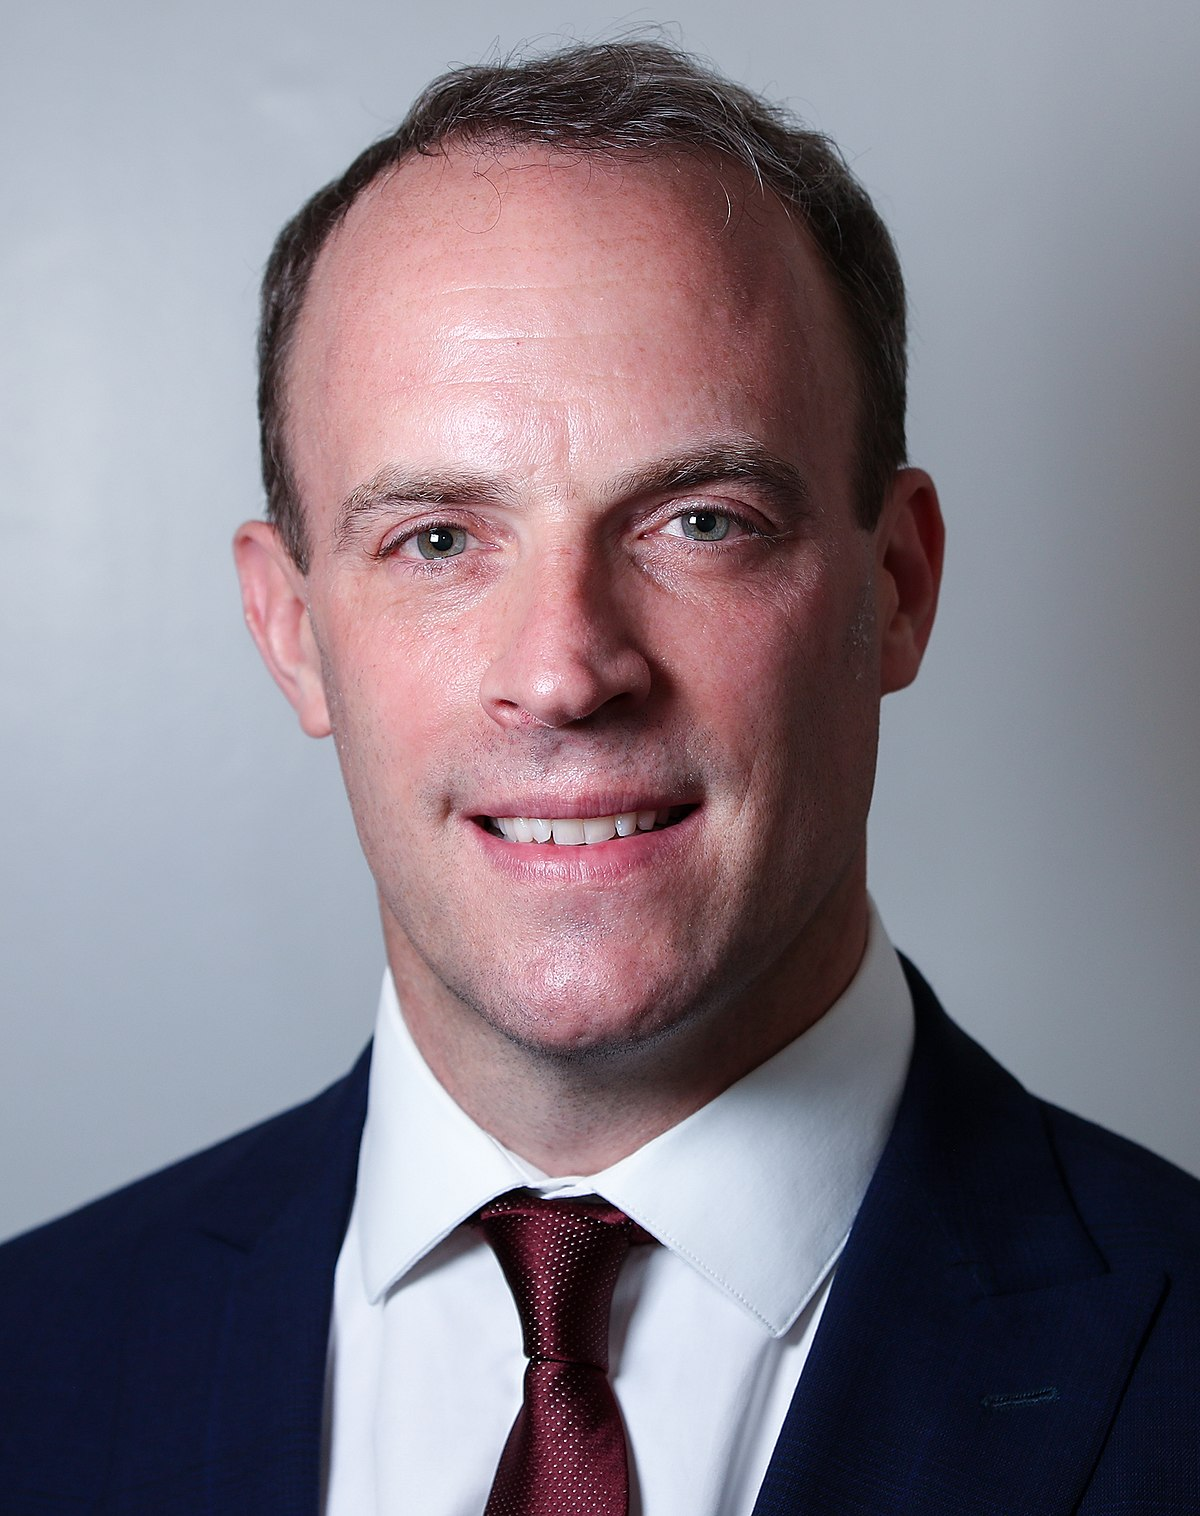 Dominic Raab - Wikipedia